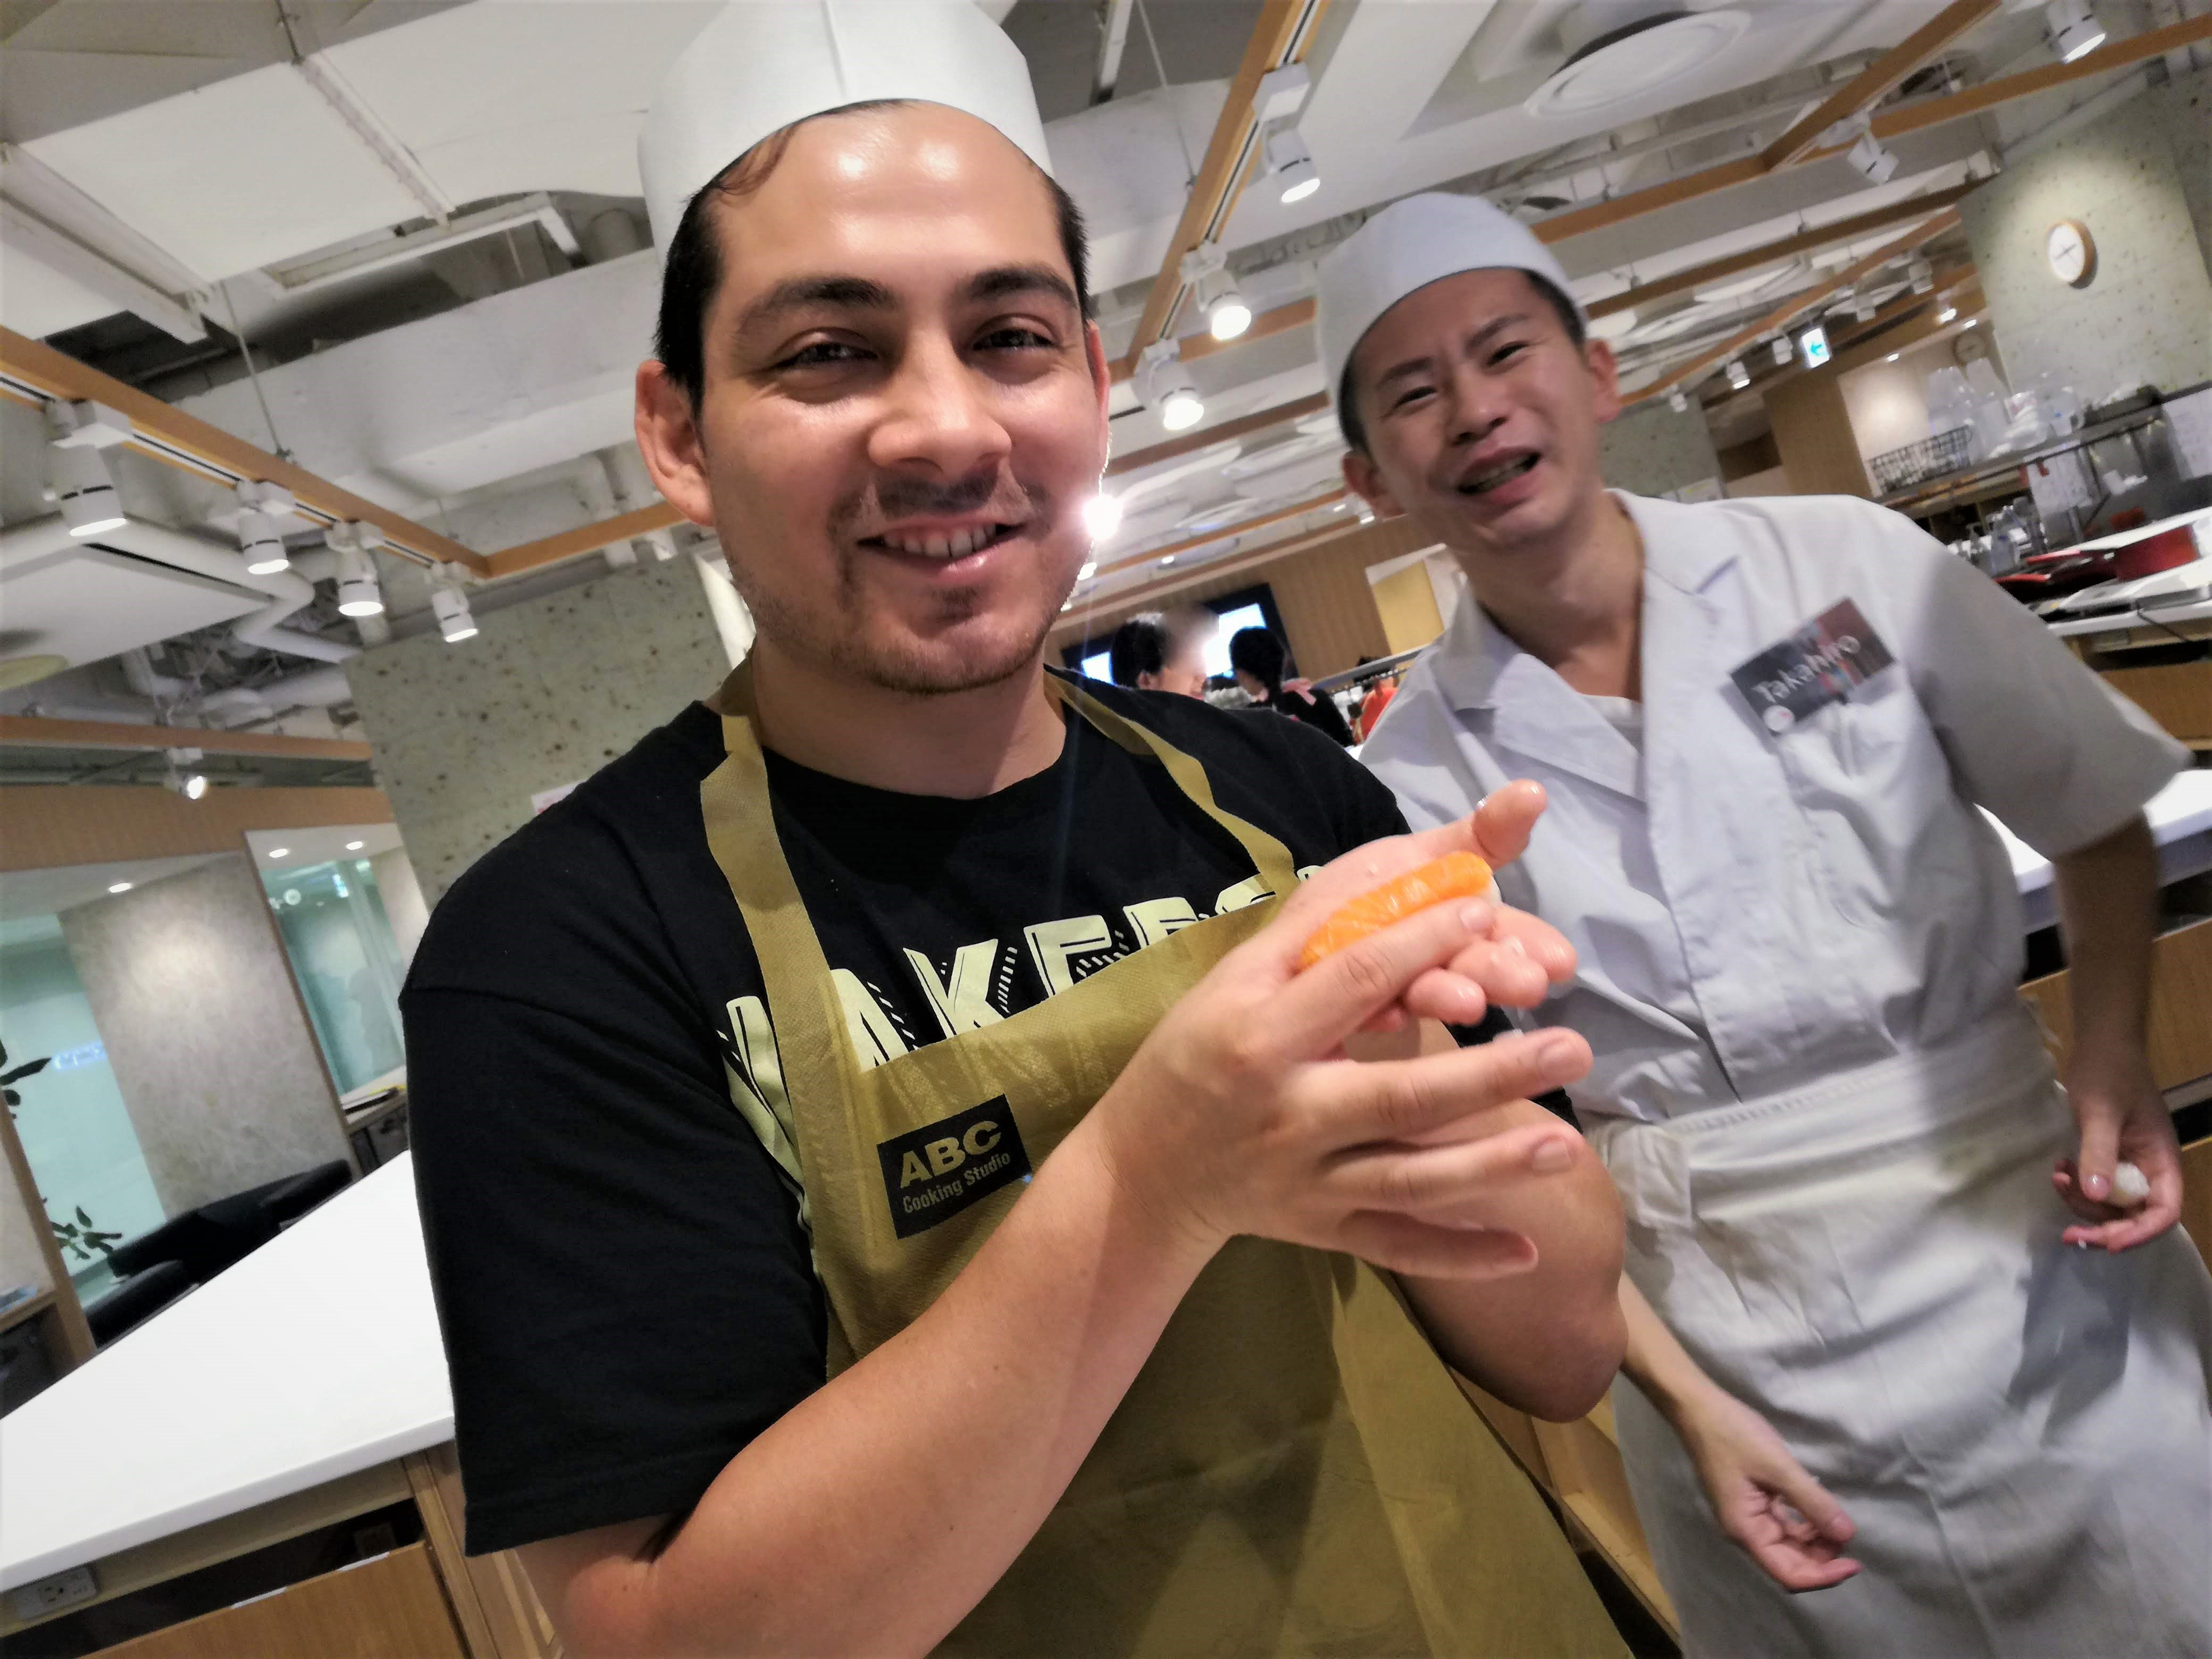 Tsukiji Old Outer Market Tour + Nigiri Sushi Making with Sushi Master